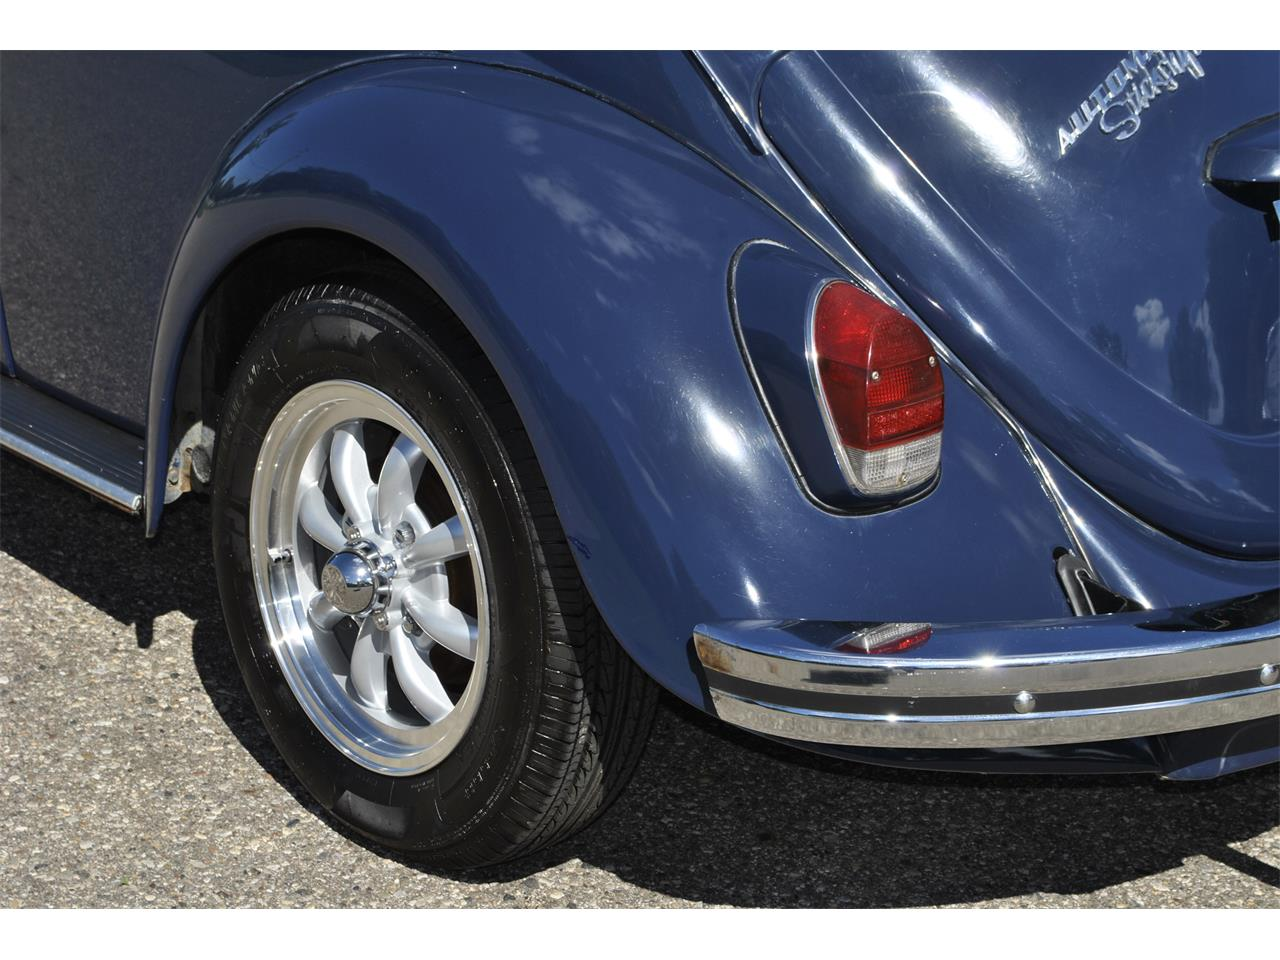 Large Picture of 1969 Volkswagen Beetle Auction Vehicle Offered by Earlywine Auctions - OP65